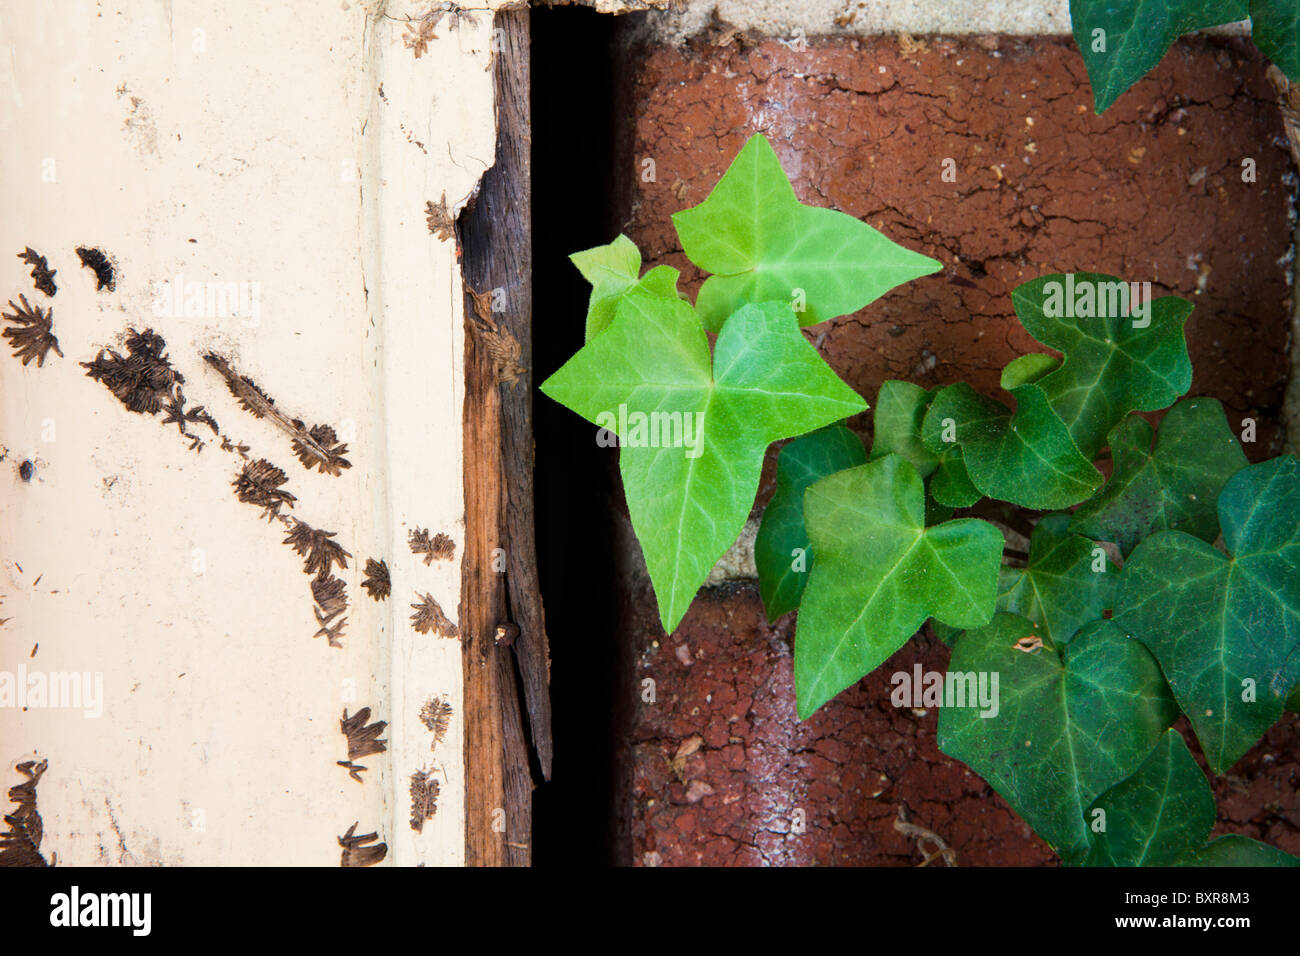 A door frame damaged from old ivy growth next to new growth. - Stock Image